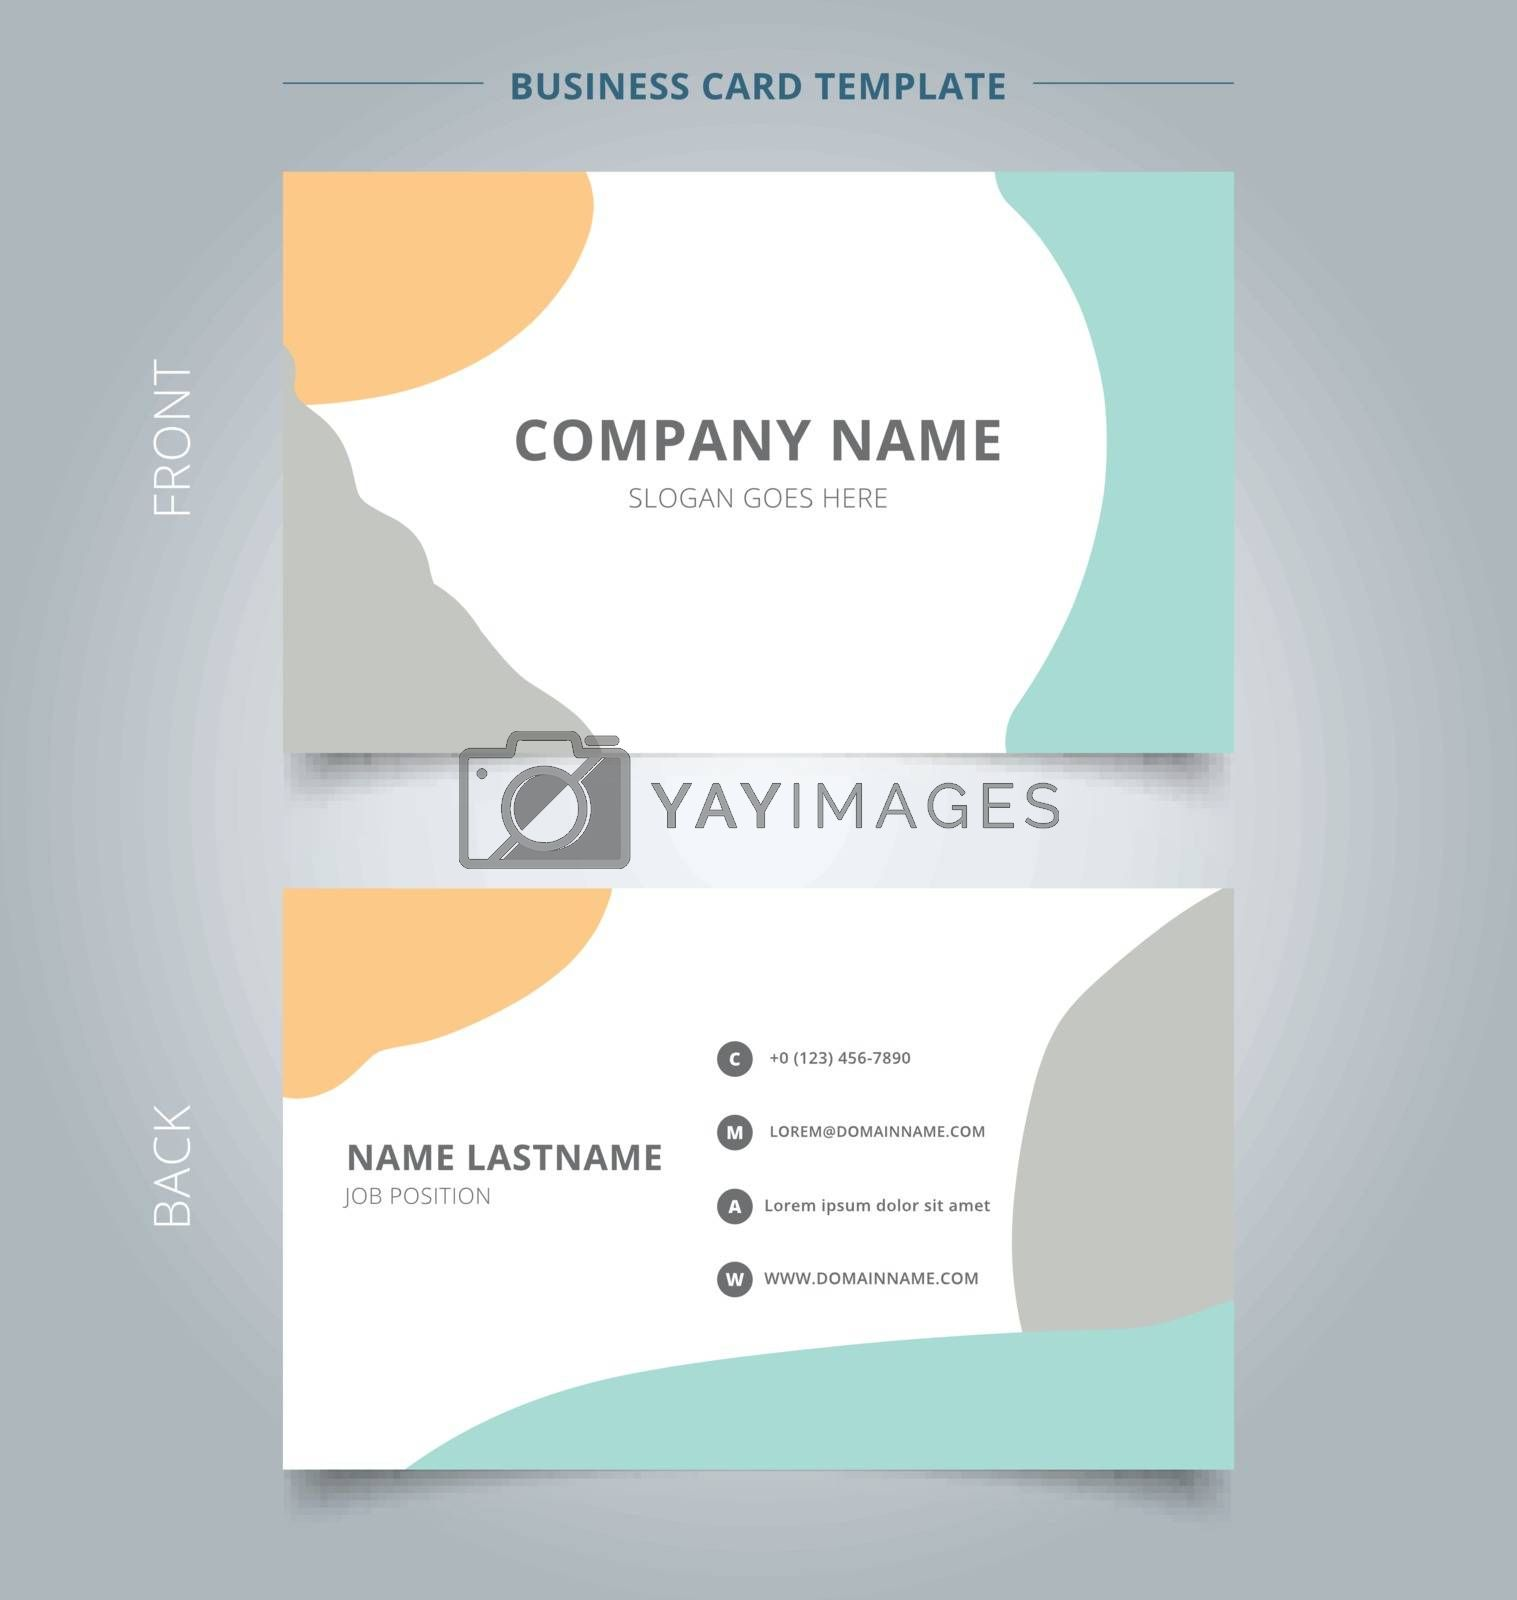 Trendy abstract business name card template layout modern style. Brush pastels color element. Vector illustration